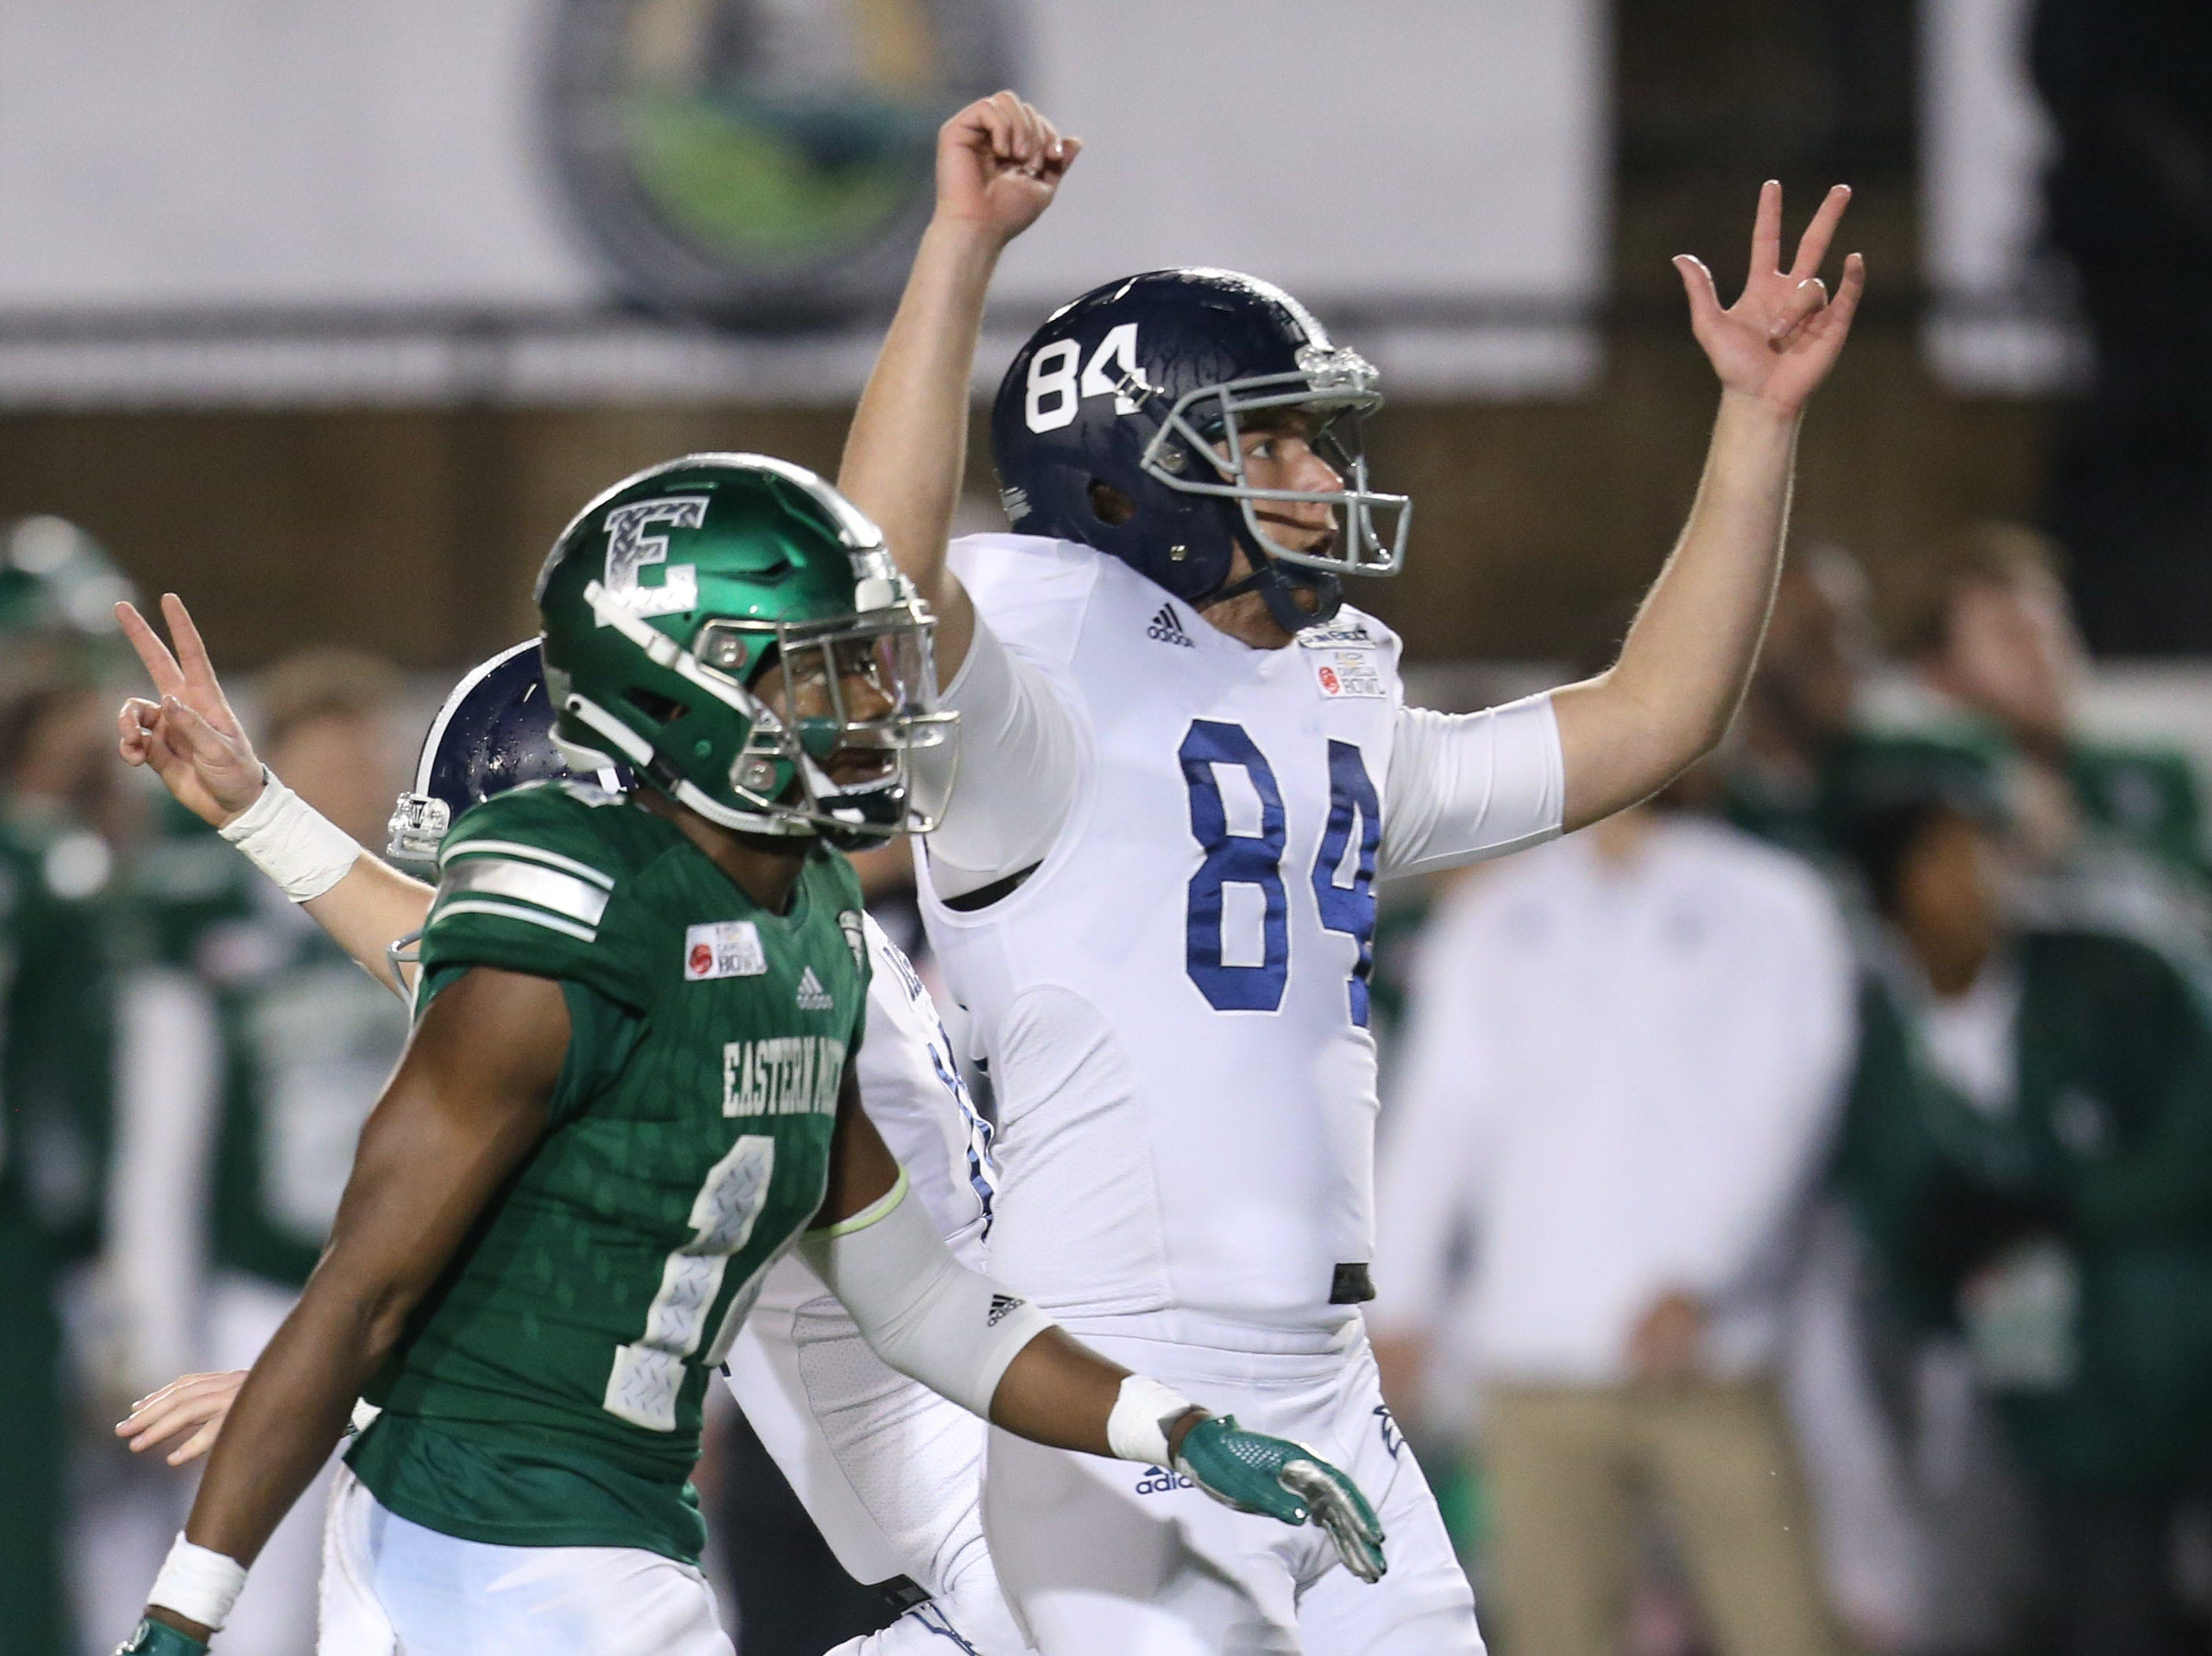 Georgia Southern Eagles punter Magill Bauerle (84) celebrates the game-winning field goal by kicker Tyler Bass that beat the Eastern Michigan Eagles in the Camellia Bowl.